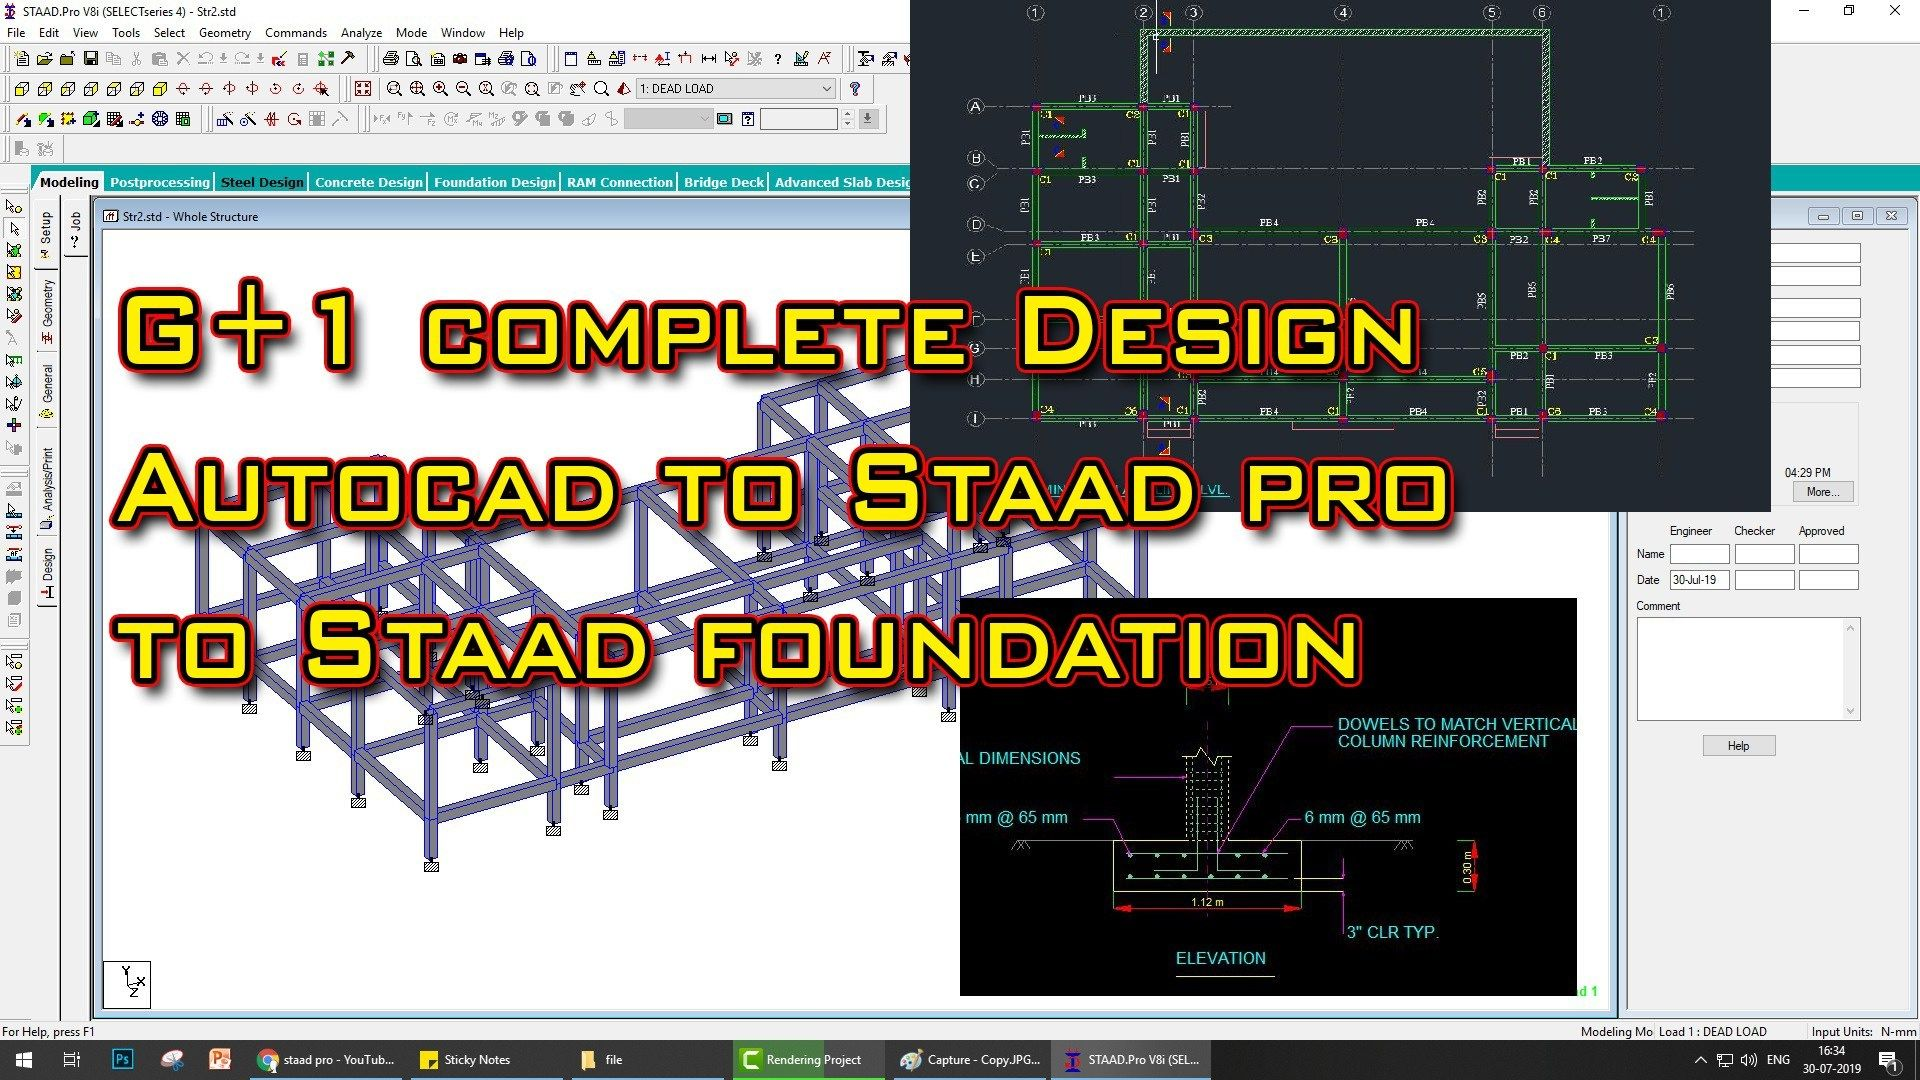 Building Design G 1 In Staad Pro Staad Foundation Foundation Engineering Civil Engineering Software Building Design